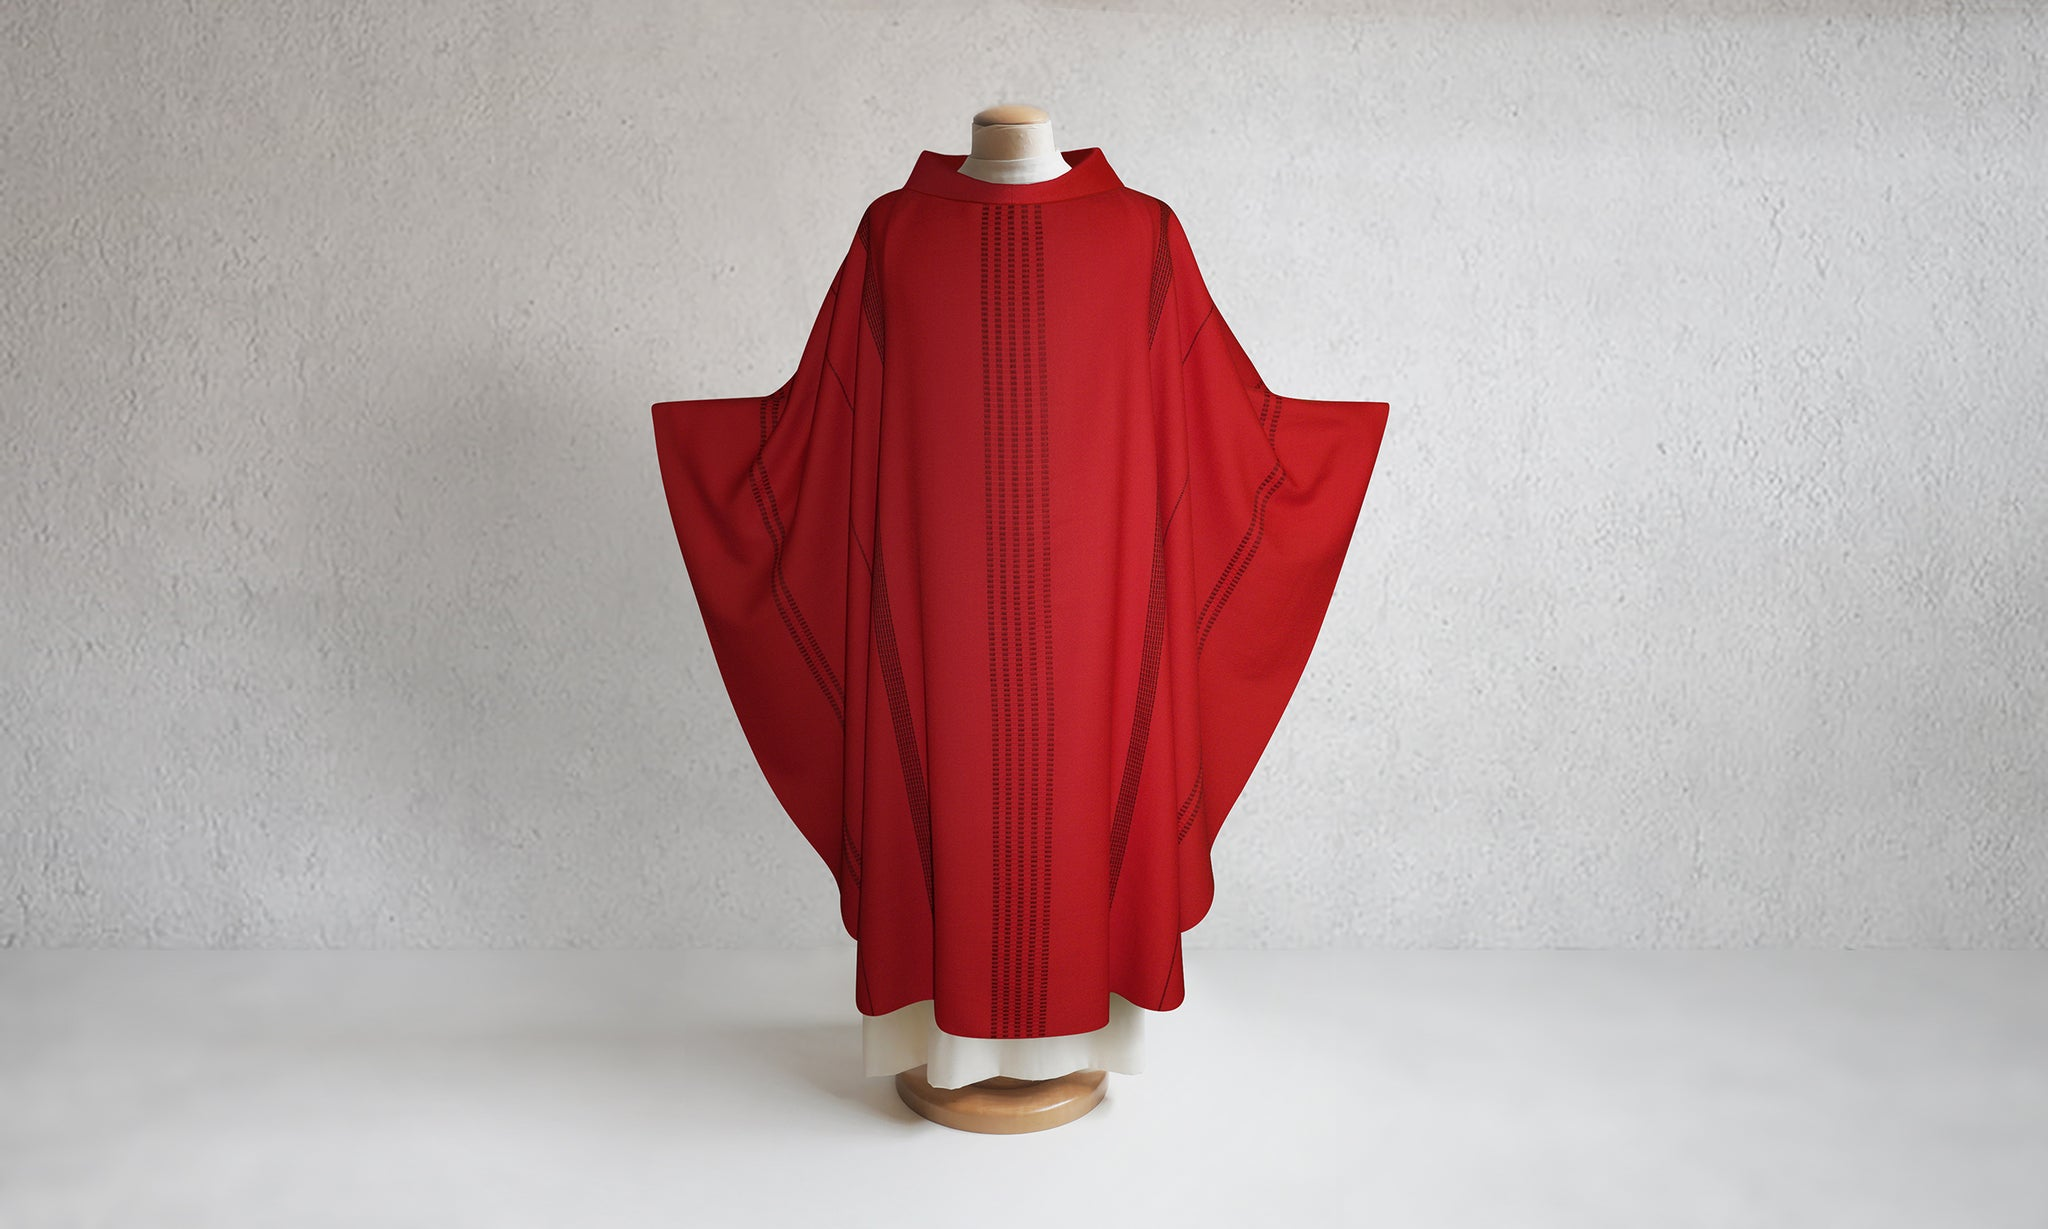 Traviata Woven Chasuble in Red